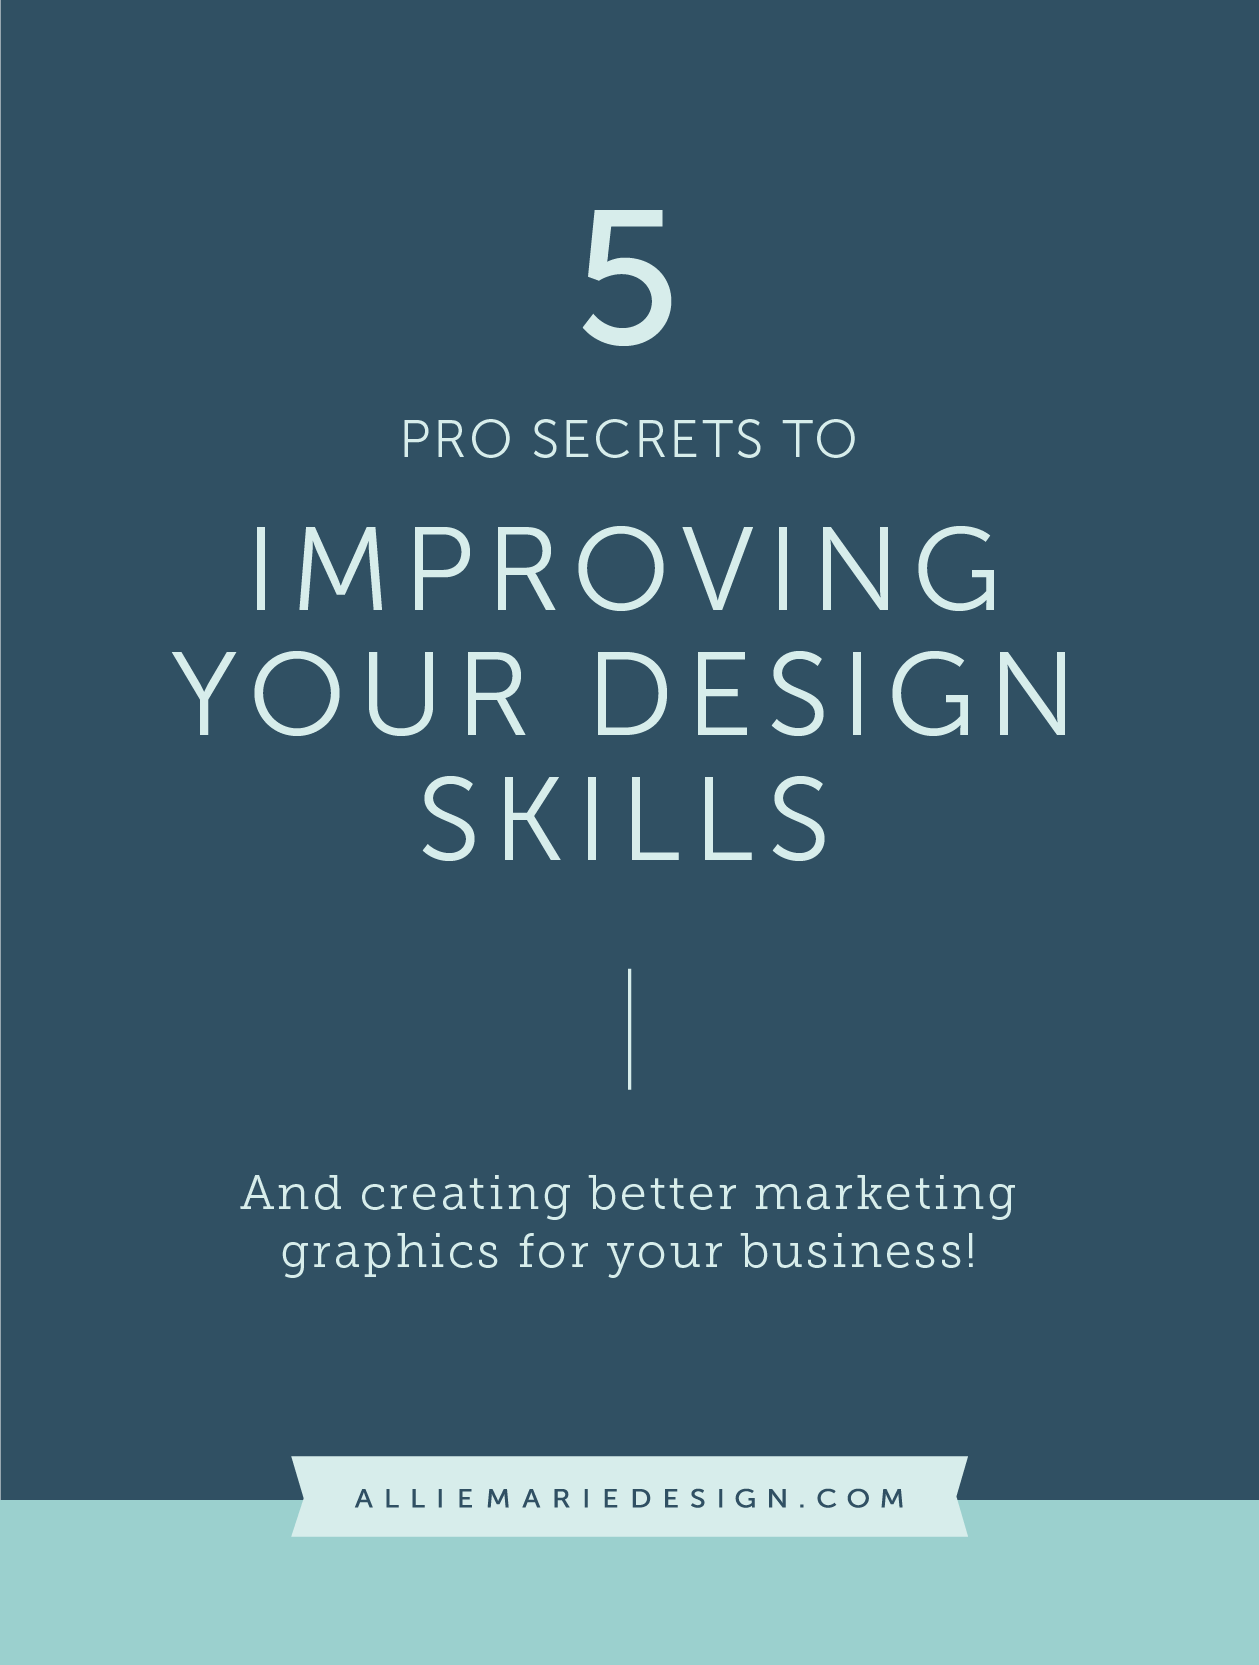 5 Pro Secrets to Improving Your Design Skills + Creating Better Marketing Graphics for your Business  |  Graphic Design Online Course  |  AllieMarie Design